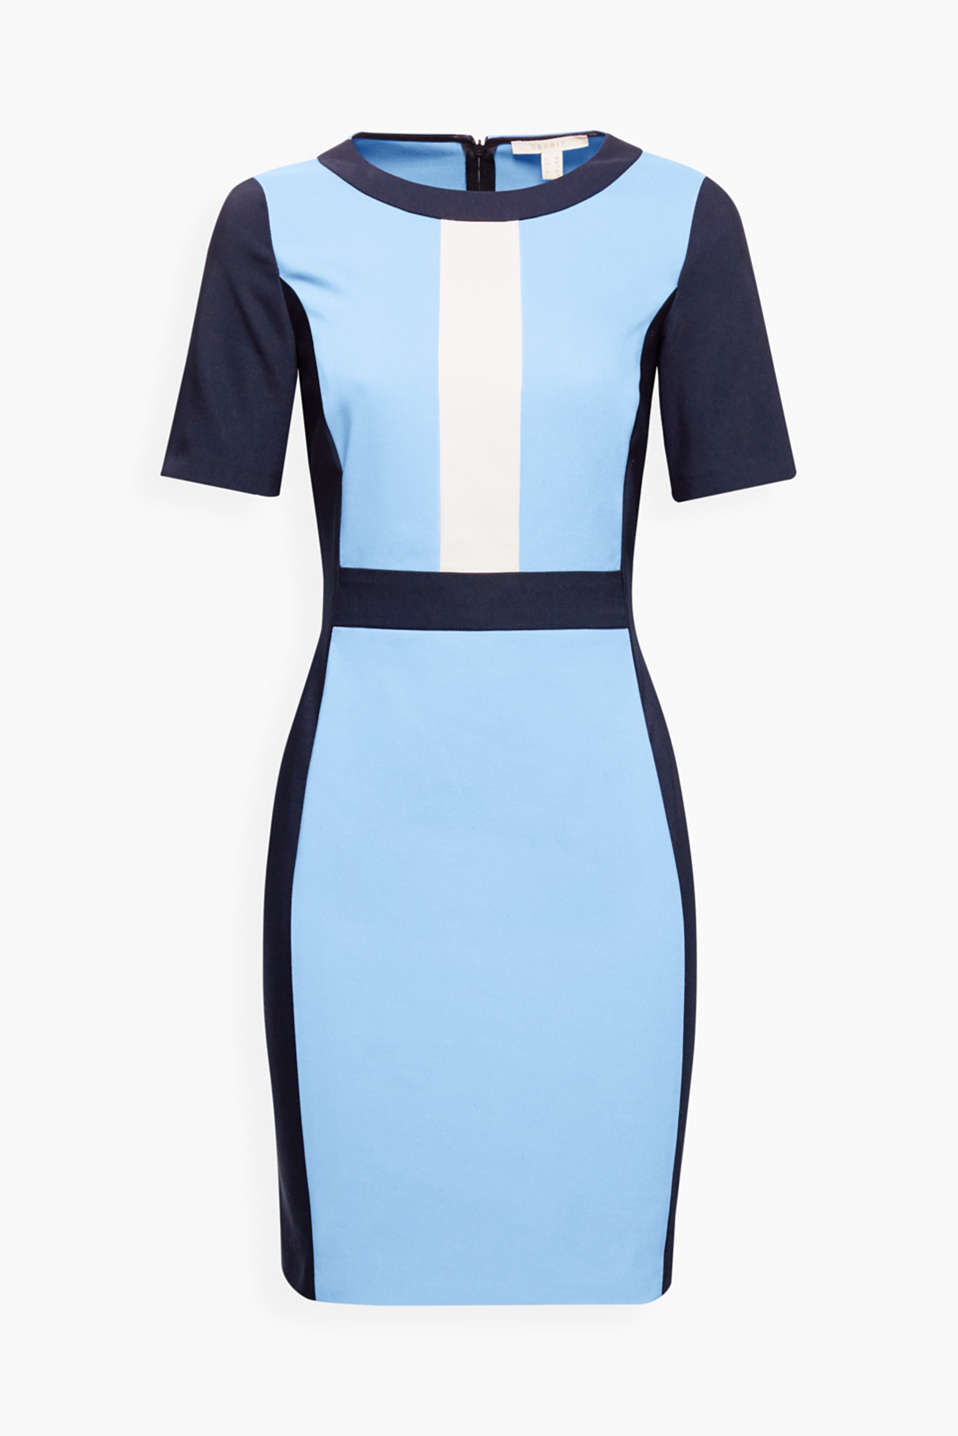 This figure-hugging stretch dress with trendy colour blocking stands out with its graphic sophistication.